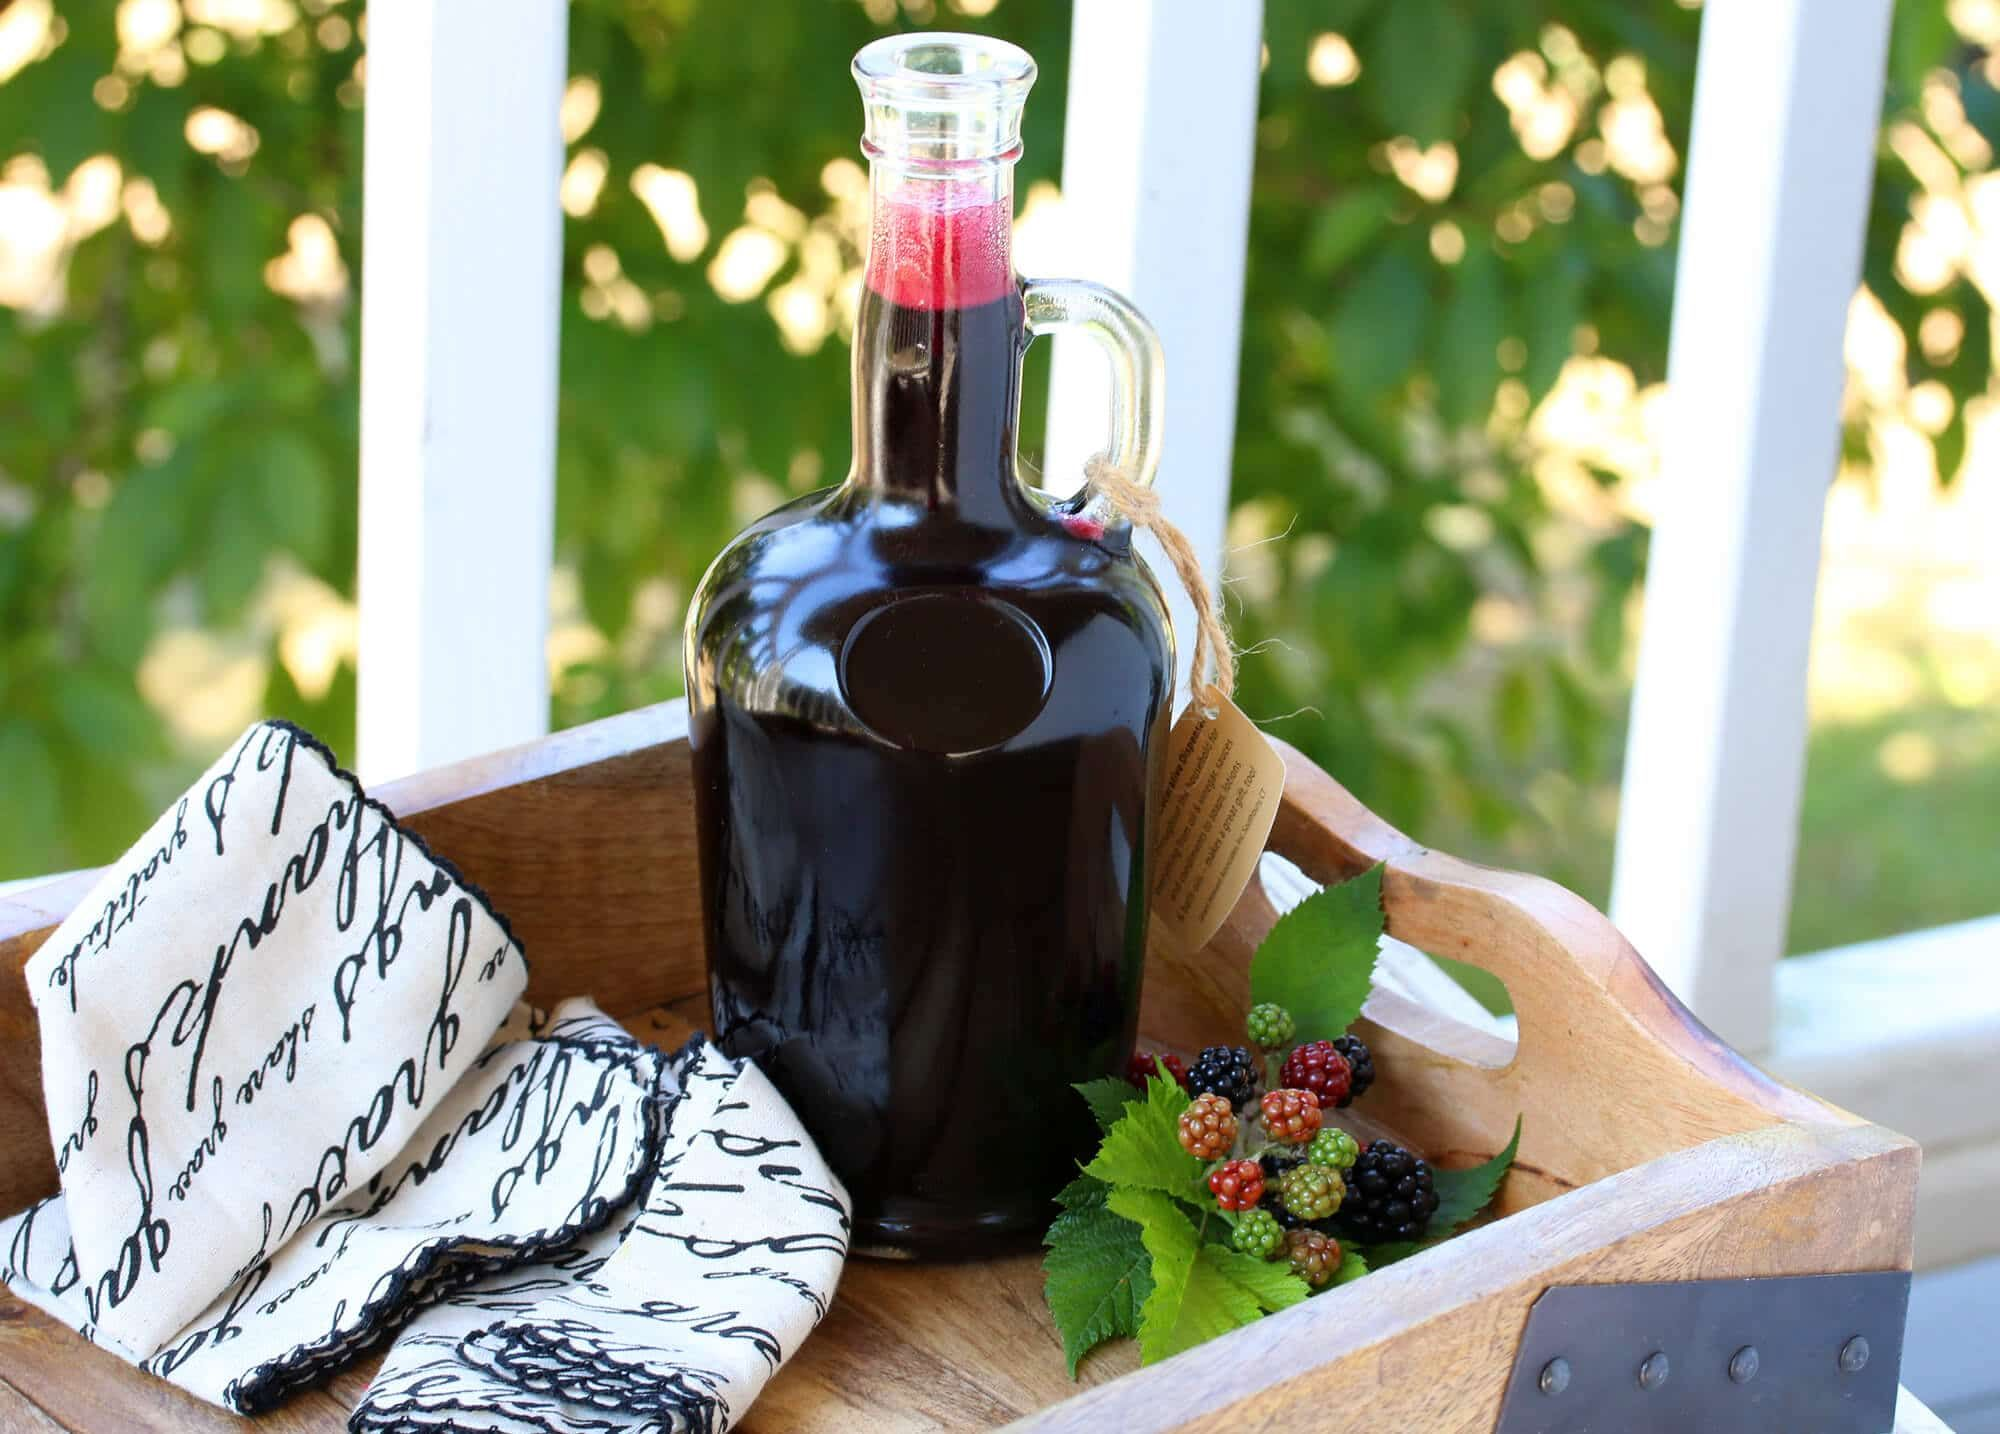 Homemade blackberry syrup or berry of choice recipe